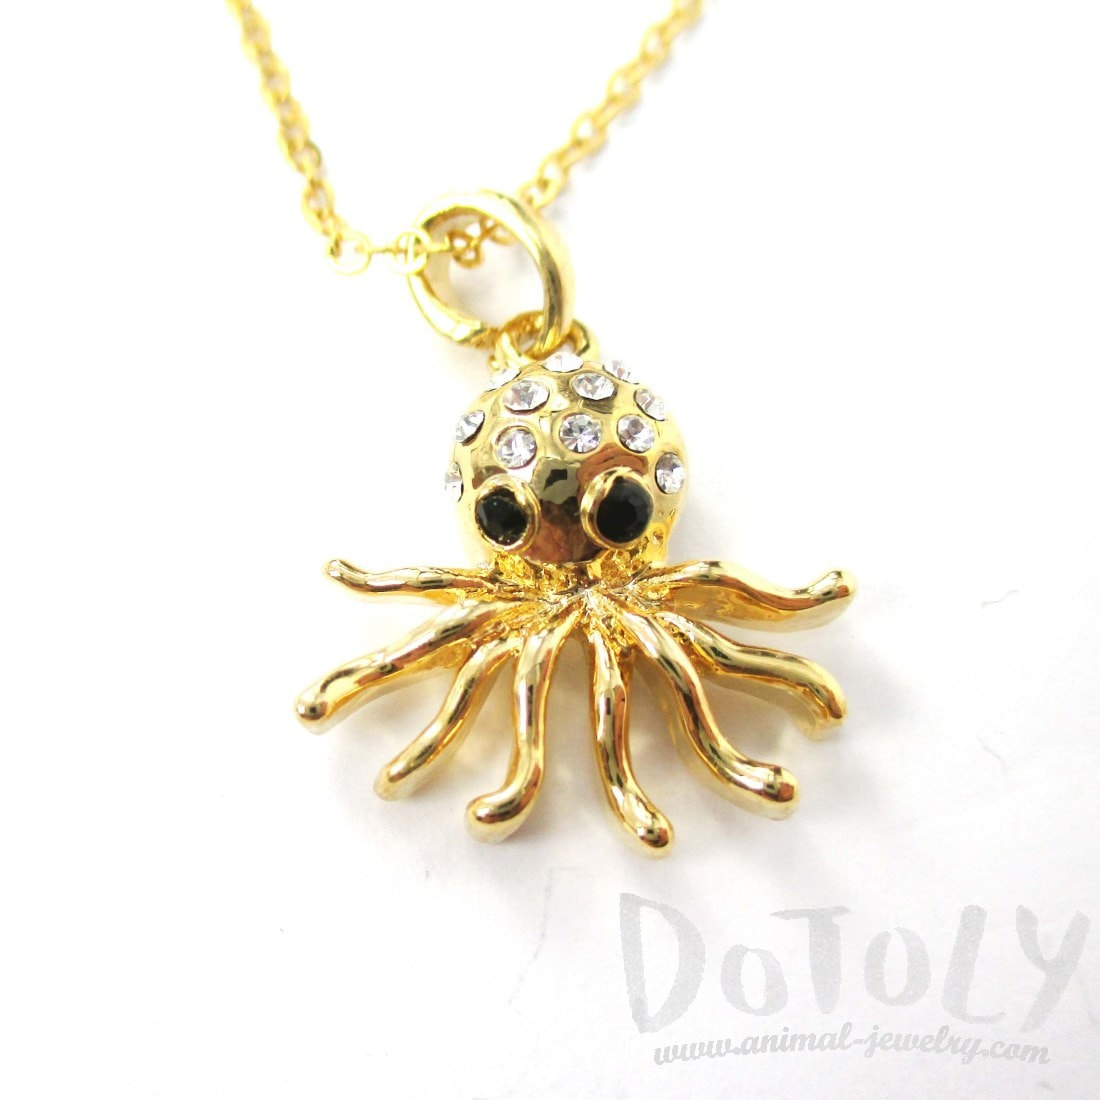 Octopus Shaped Rhinestone Pendant Necklace in Gold